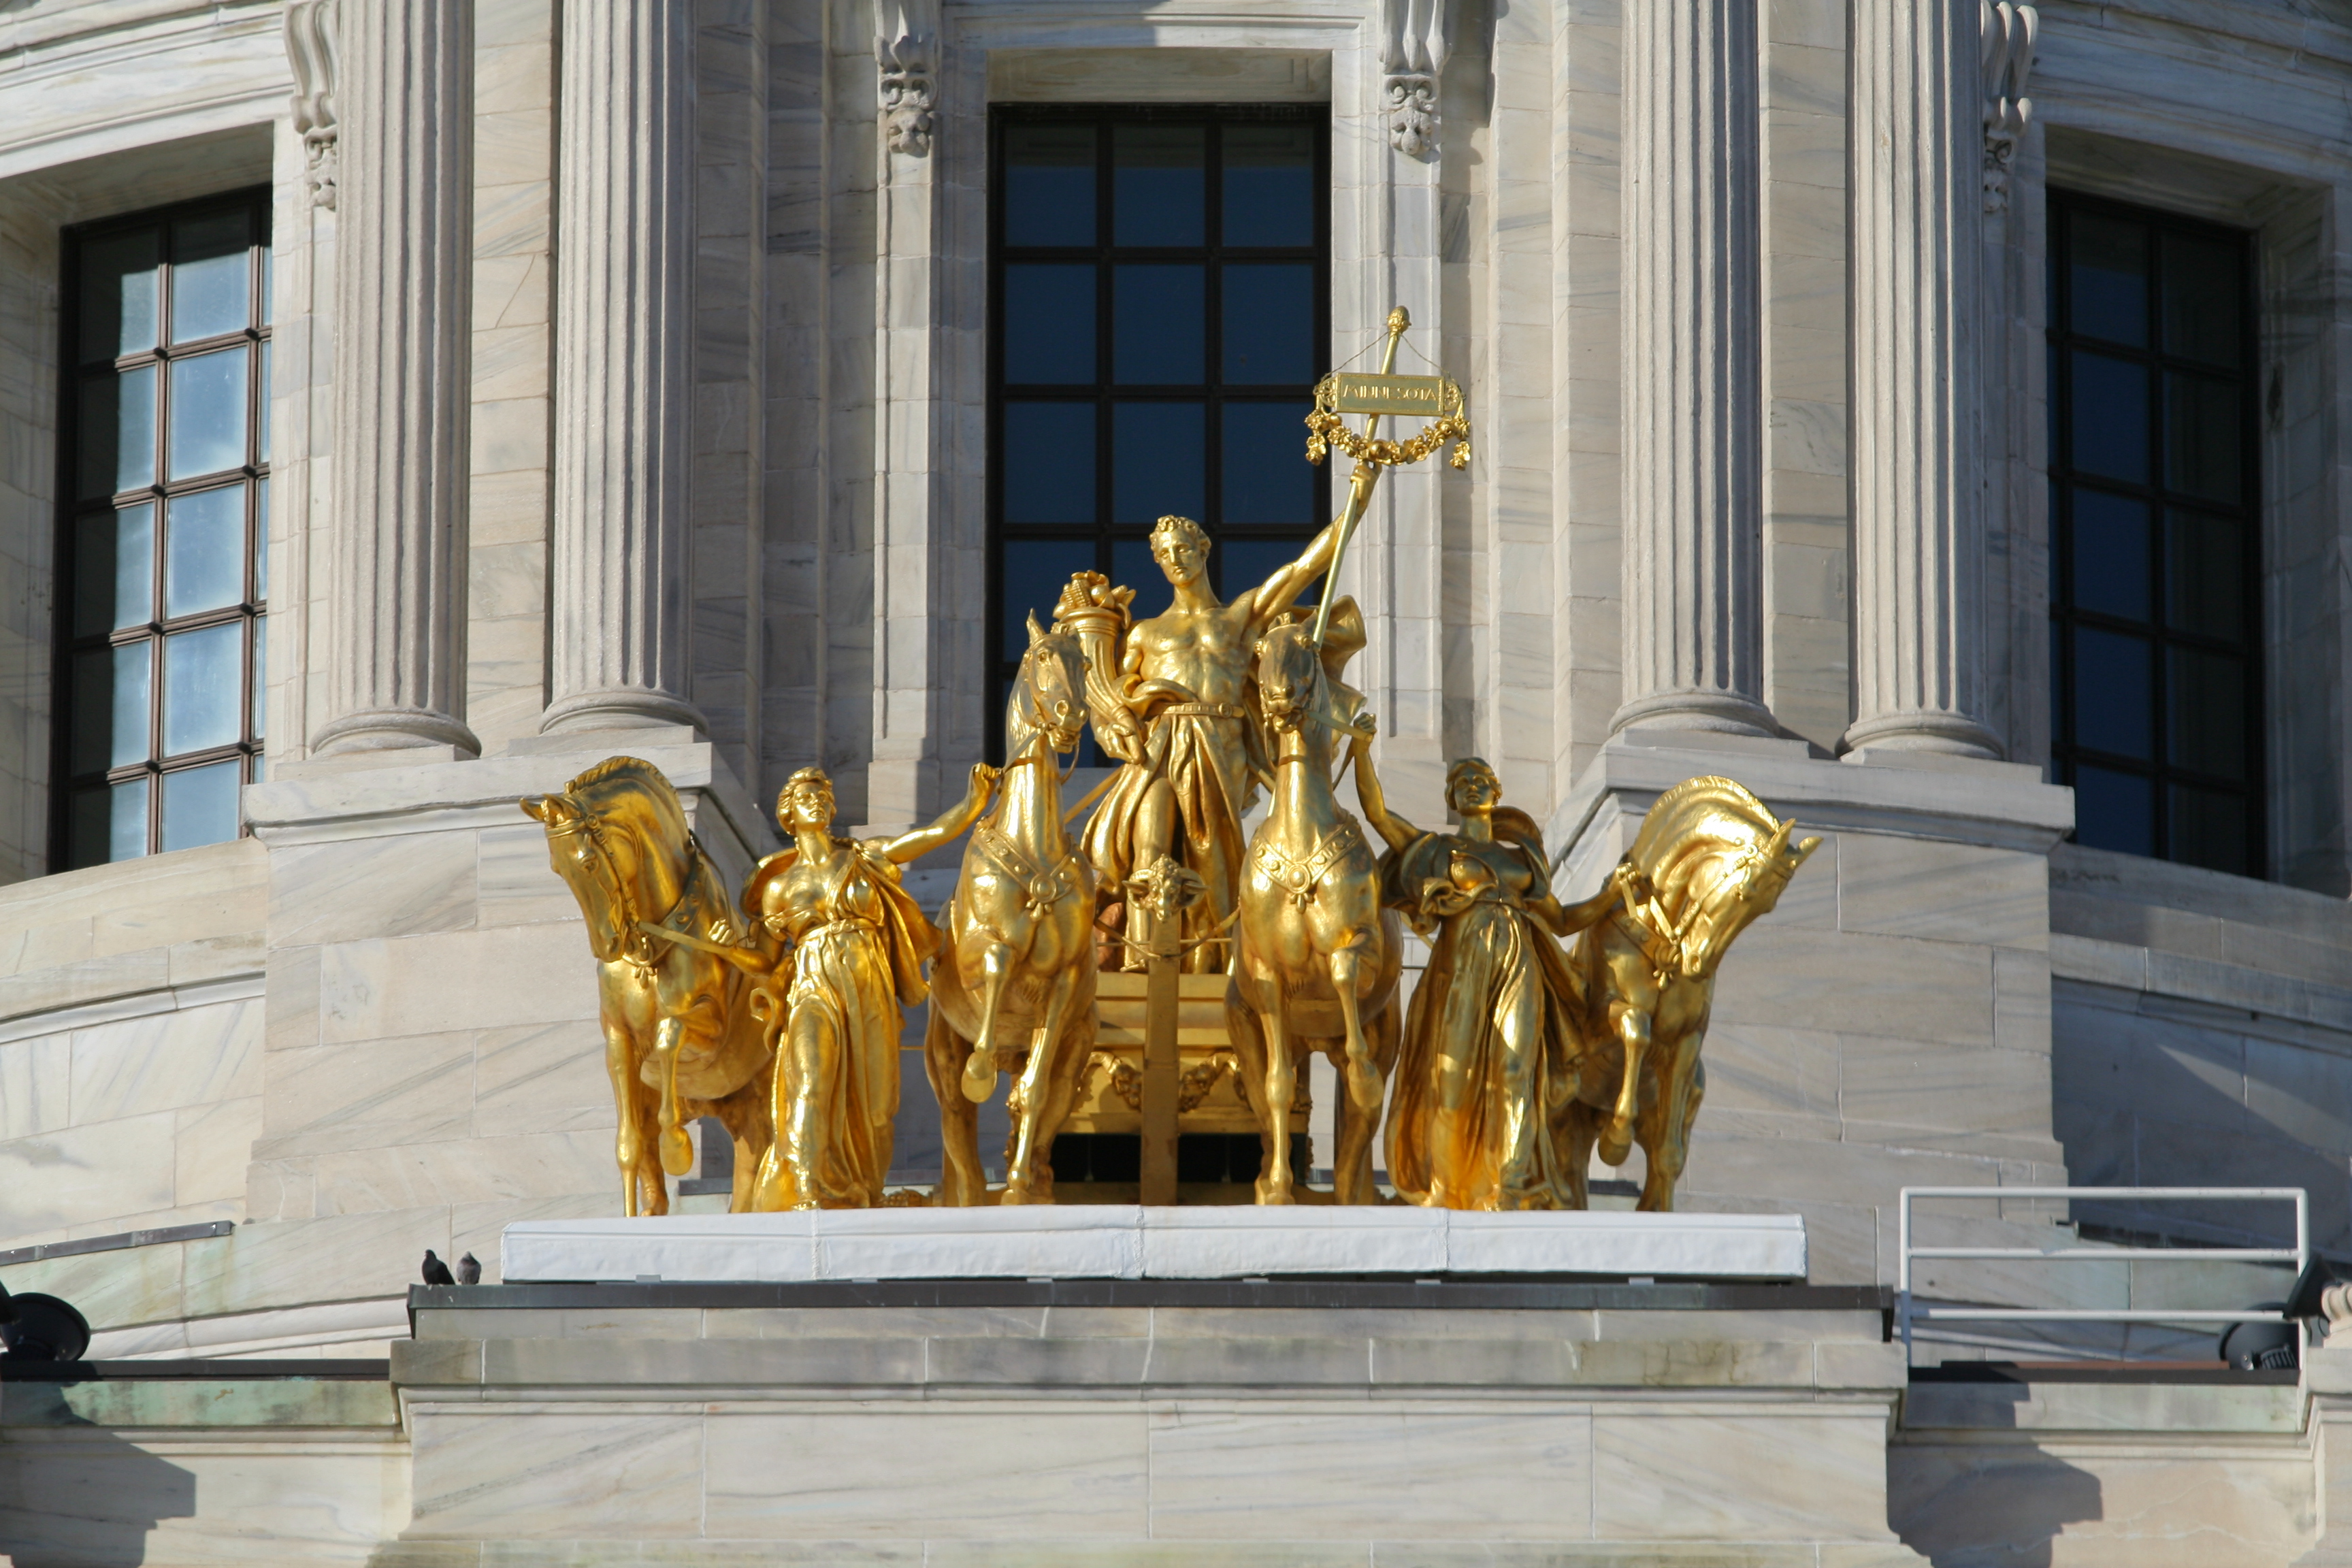 Golden statue: Progress of the State